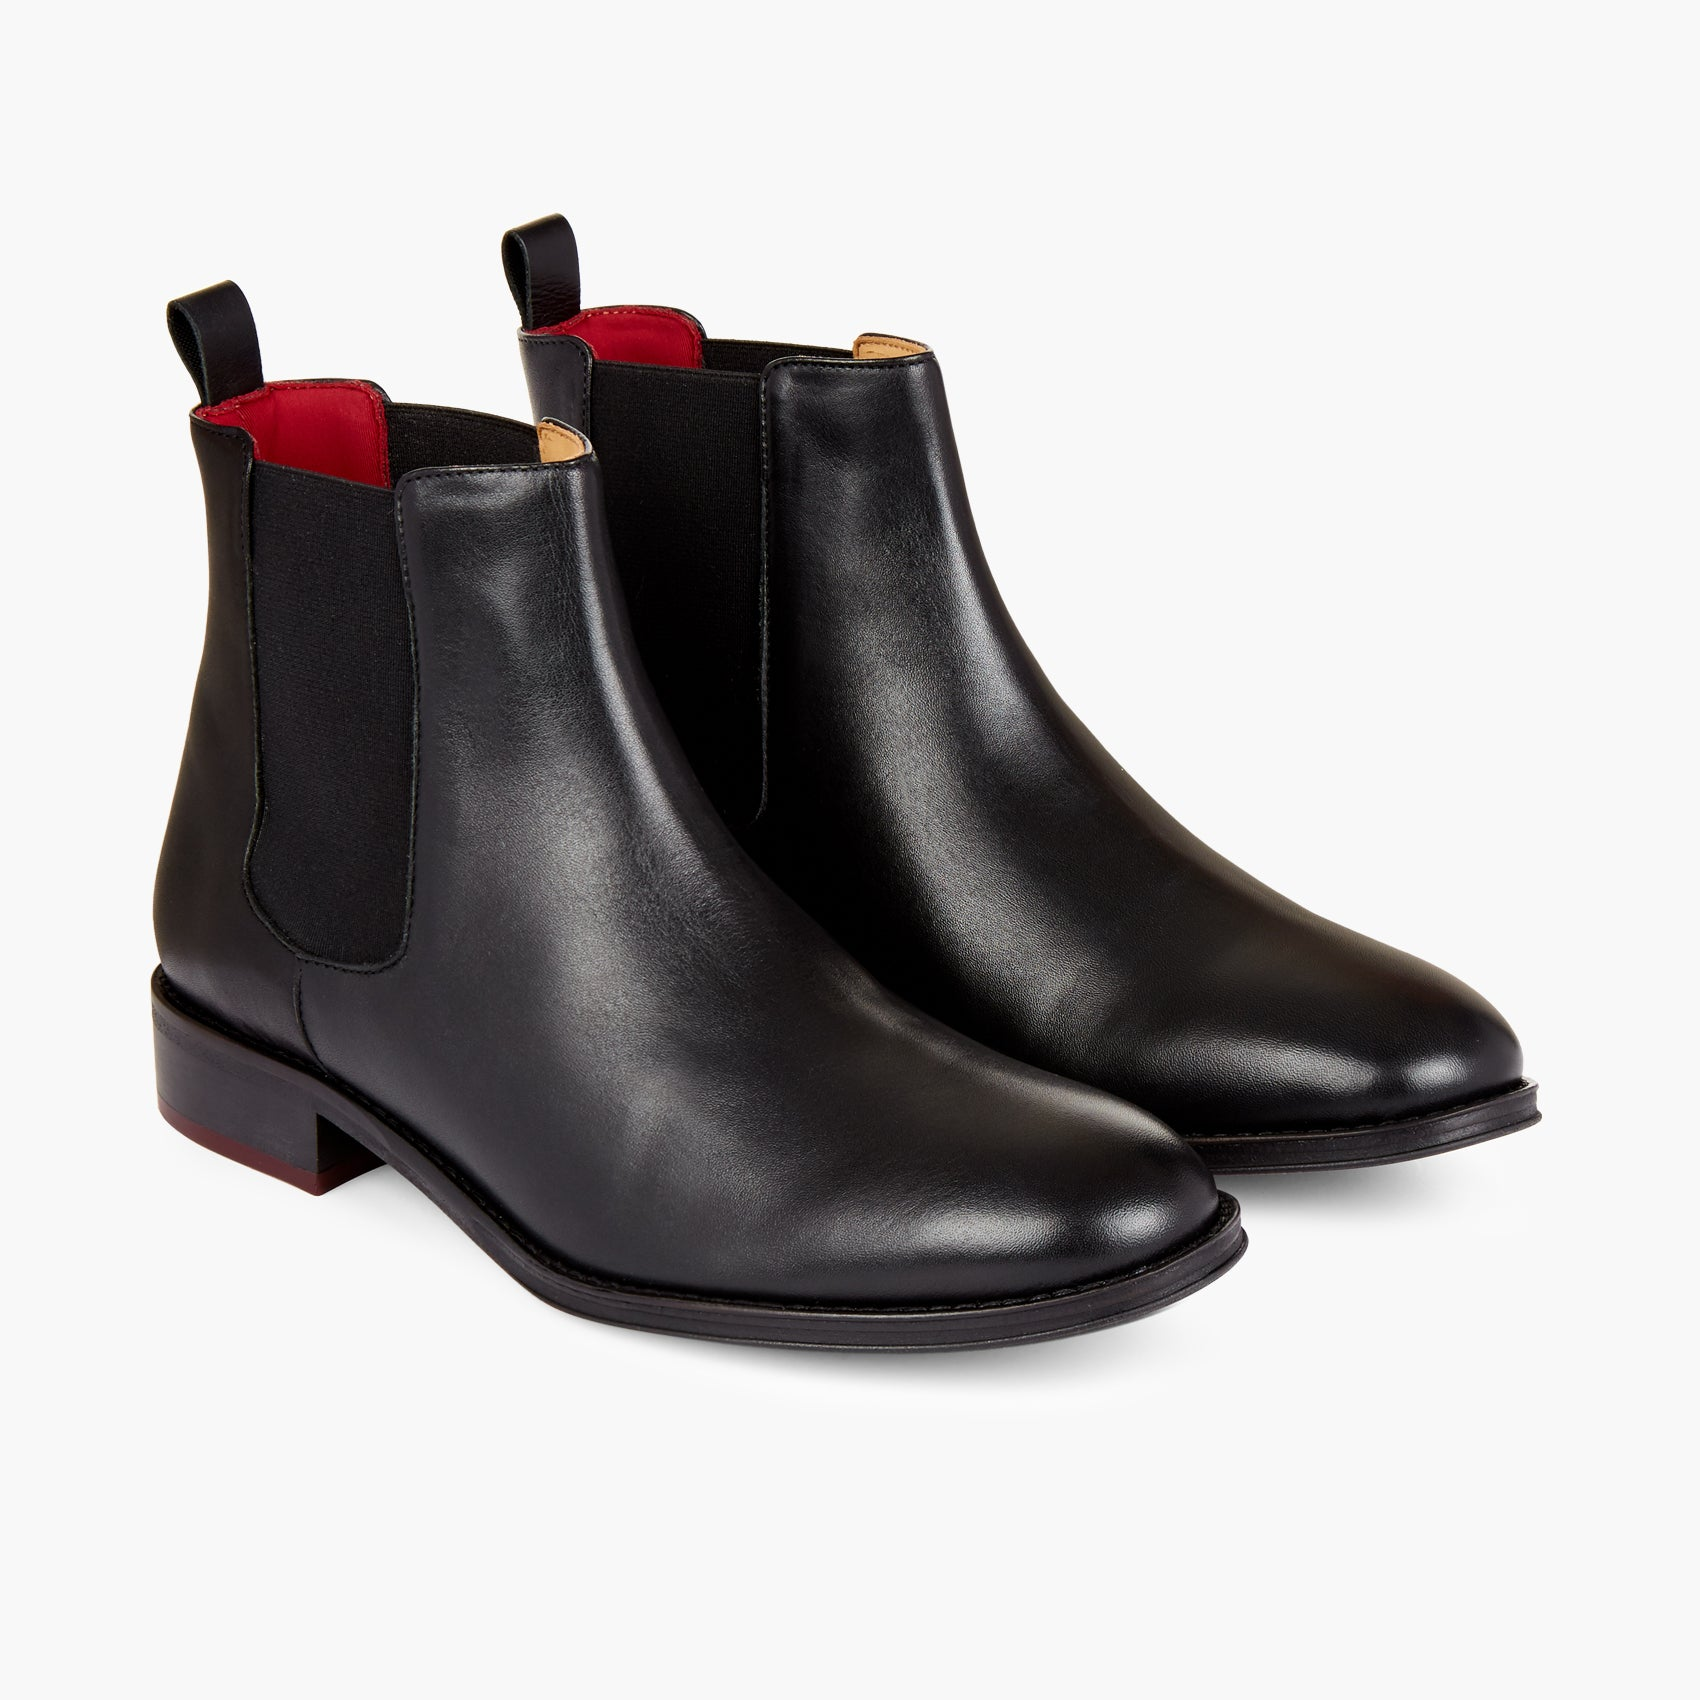 7fdf80524999 The  67 Chelsea Boot